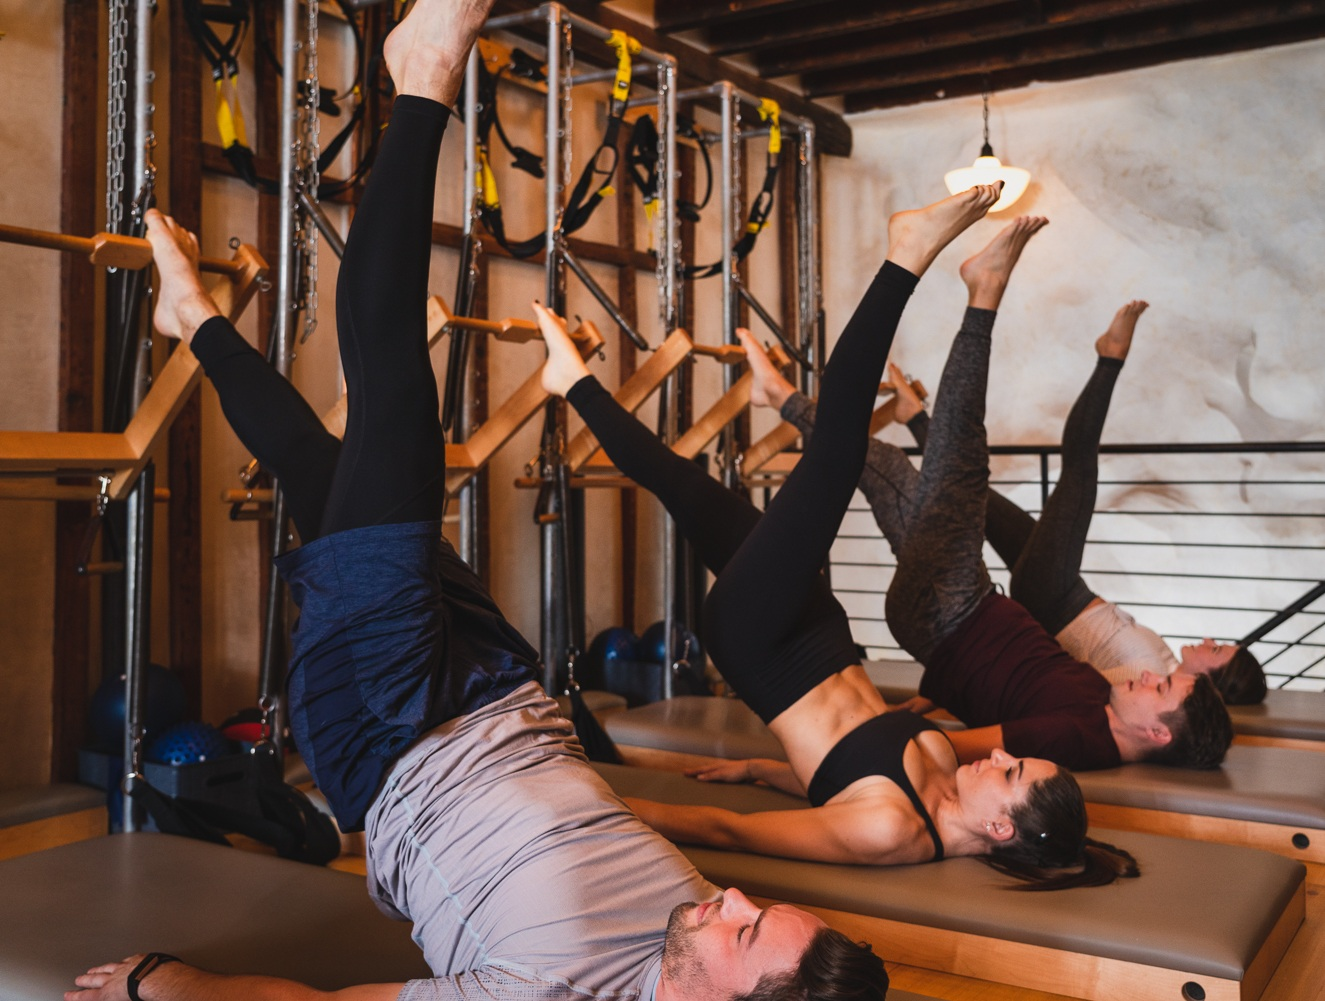 PILATES - Our standard Pilates class helps you develop a long, lean body in a challenging workout. The resistance of the Tower adds intensity to a traditional Pilates routine, producing a sculpted body and strong core. A great complement to your HIIT, Crossfit, or even Yoga training.